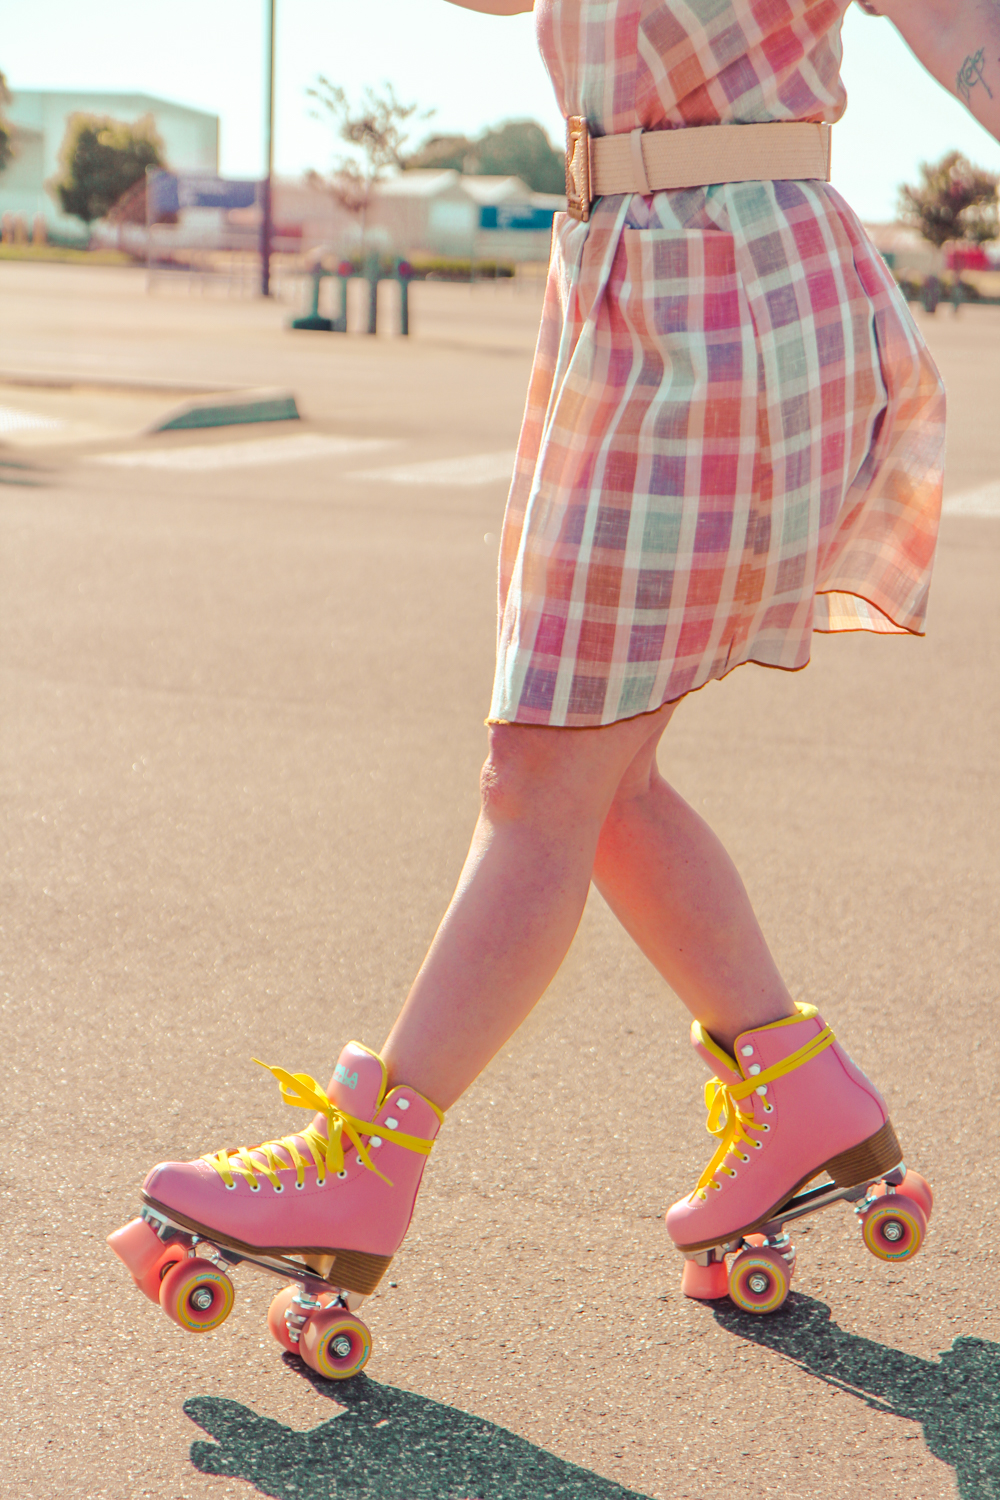 Liana of @findingfemme in Impala roller skates and check pastel dress.